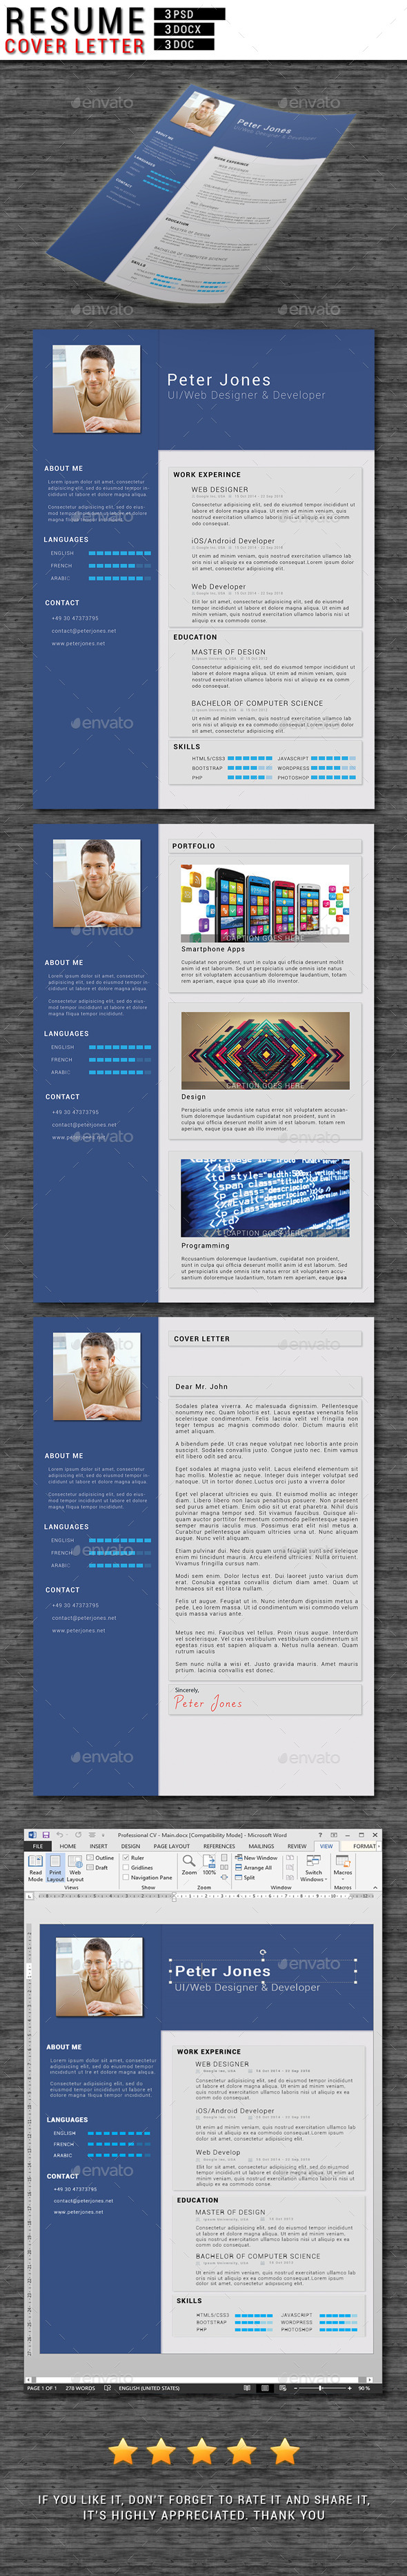 GraphicRiver 3 Piece Resume CV Cover Letter 10599200